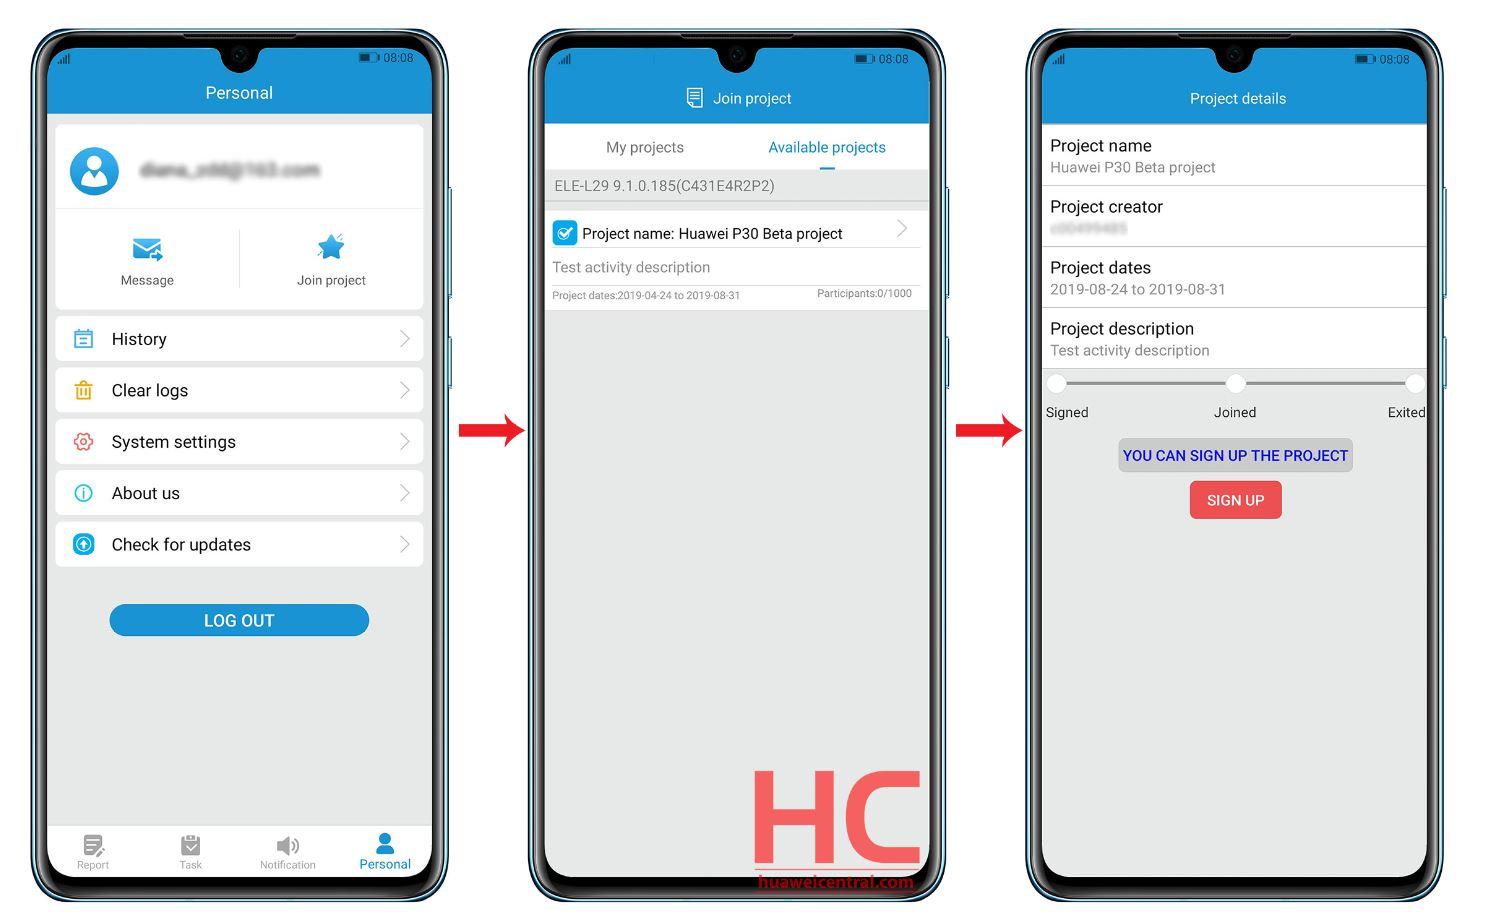 How To Download And Install Emui 10 Beta Huawei Central